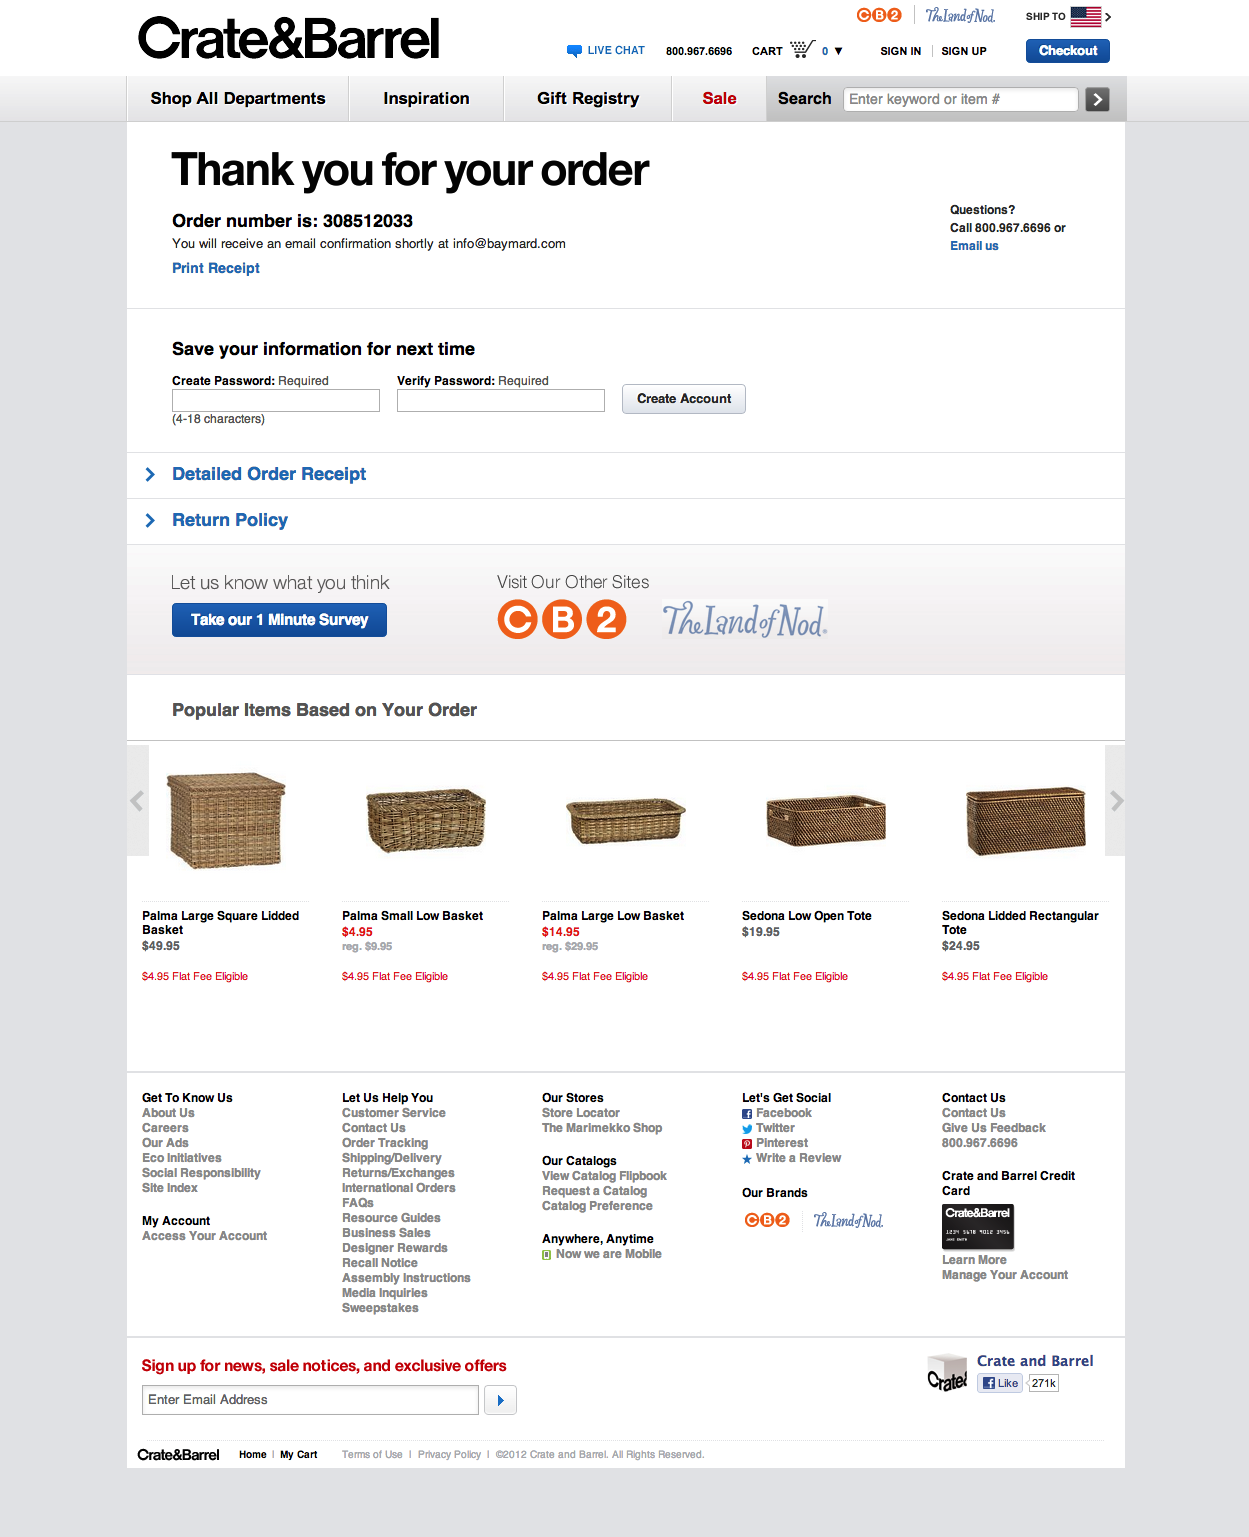 Crate and barrel place the account creation at the order confirmation